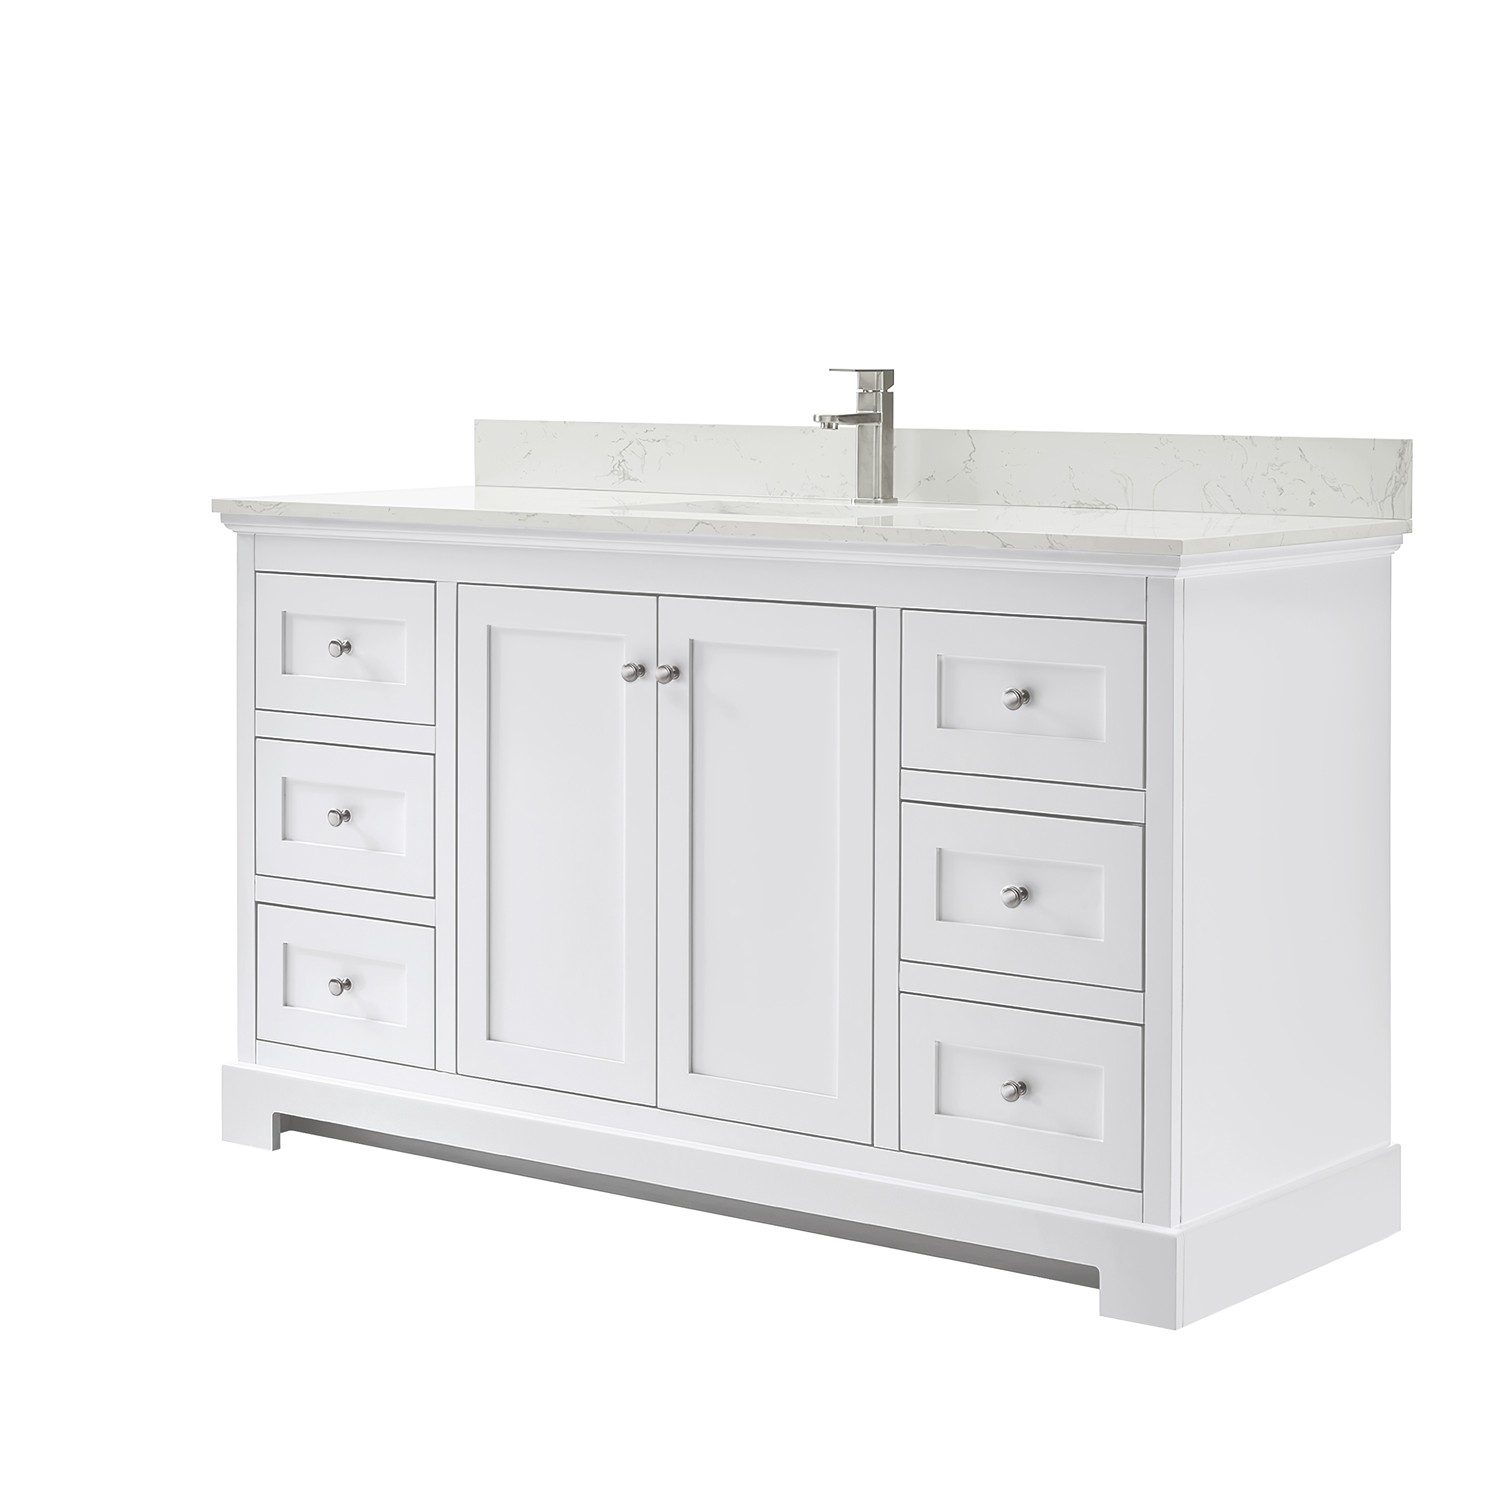 Wyndham Collection Wca404060swhccunsmxx Ryla 60 Inch Single Bathroom Vanity In White Carrara Cultured Marble